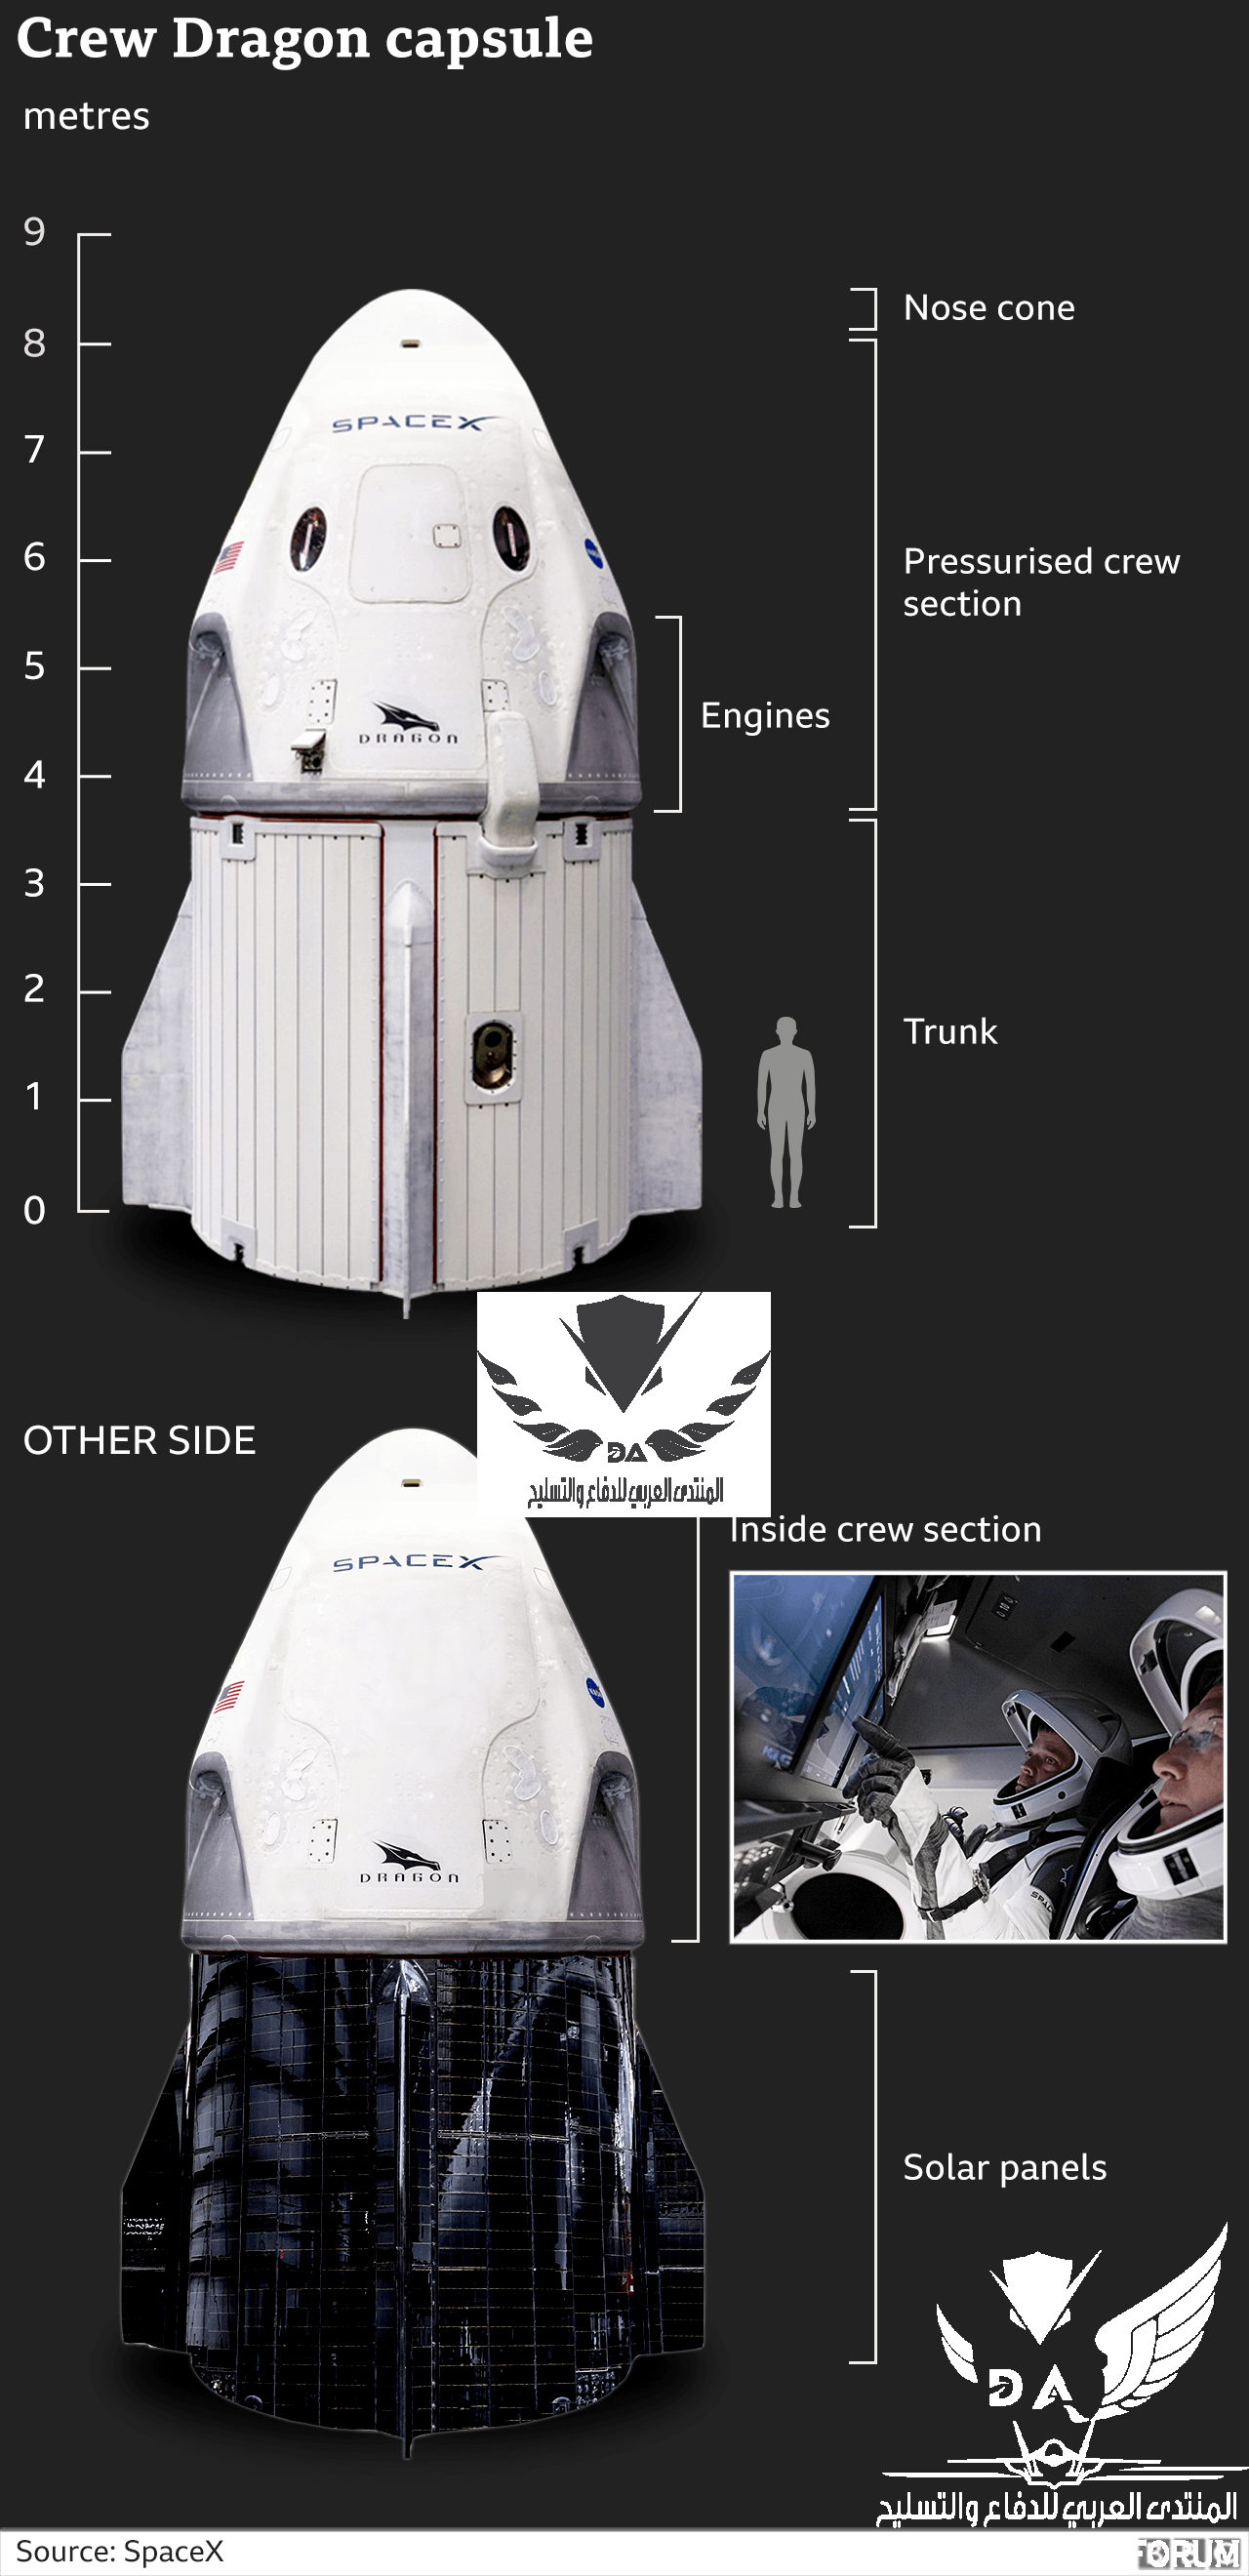 _112424554_space_x_dragon_capsule_inf640-2x-nc.png